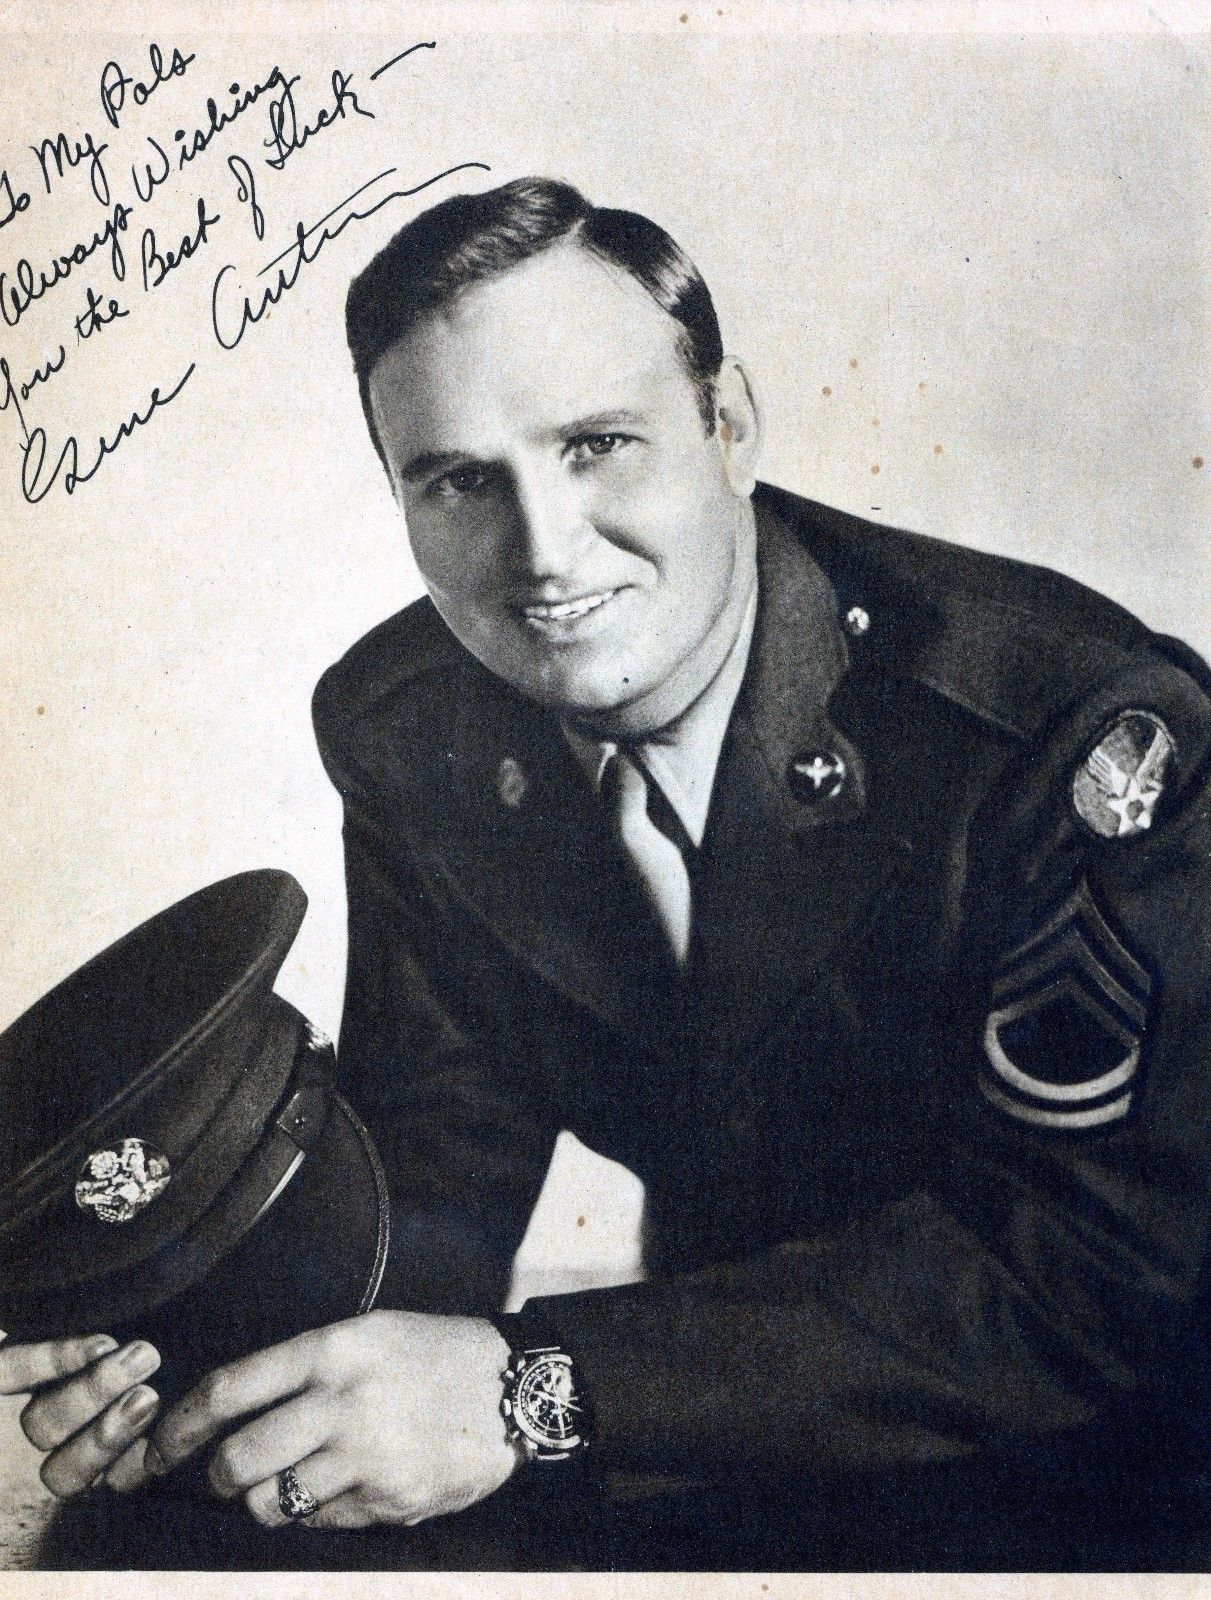 gene autry Gene autry, perhaps the greatest singing cowboy of all time, is born on this day in 1907, in tioga, texaswhile still a boy, autry moved with his family to a ranch in oklahoma where he learned to play the guitar and sing.